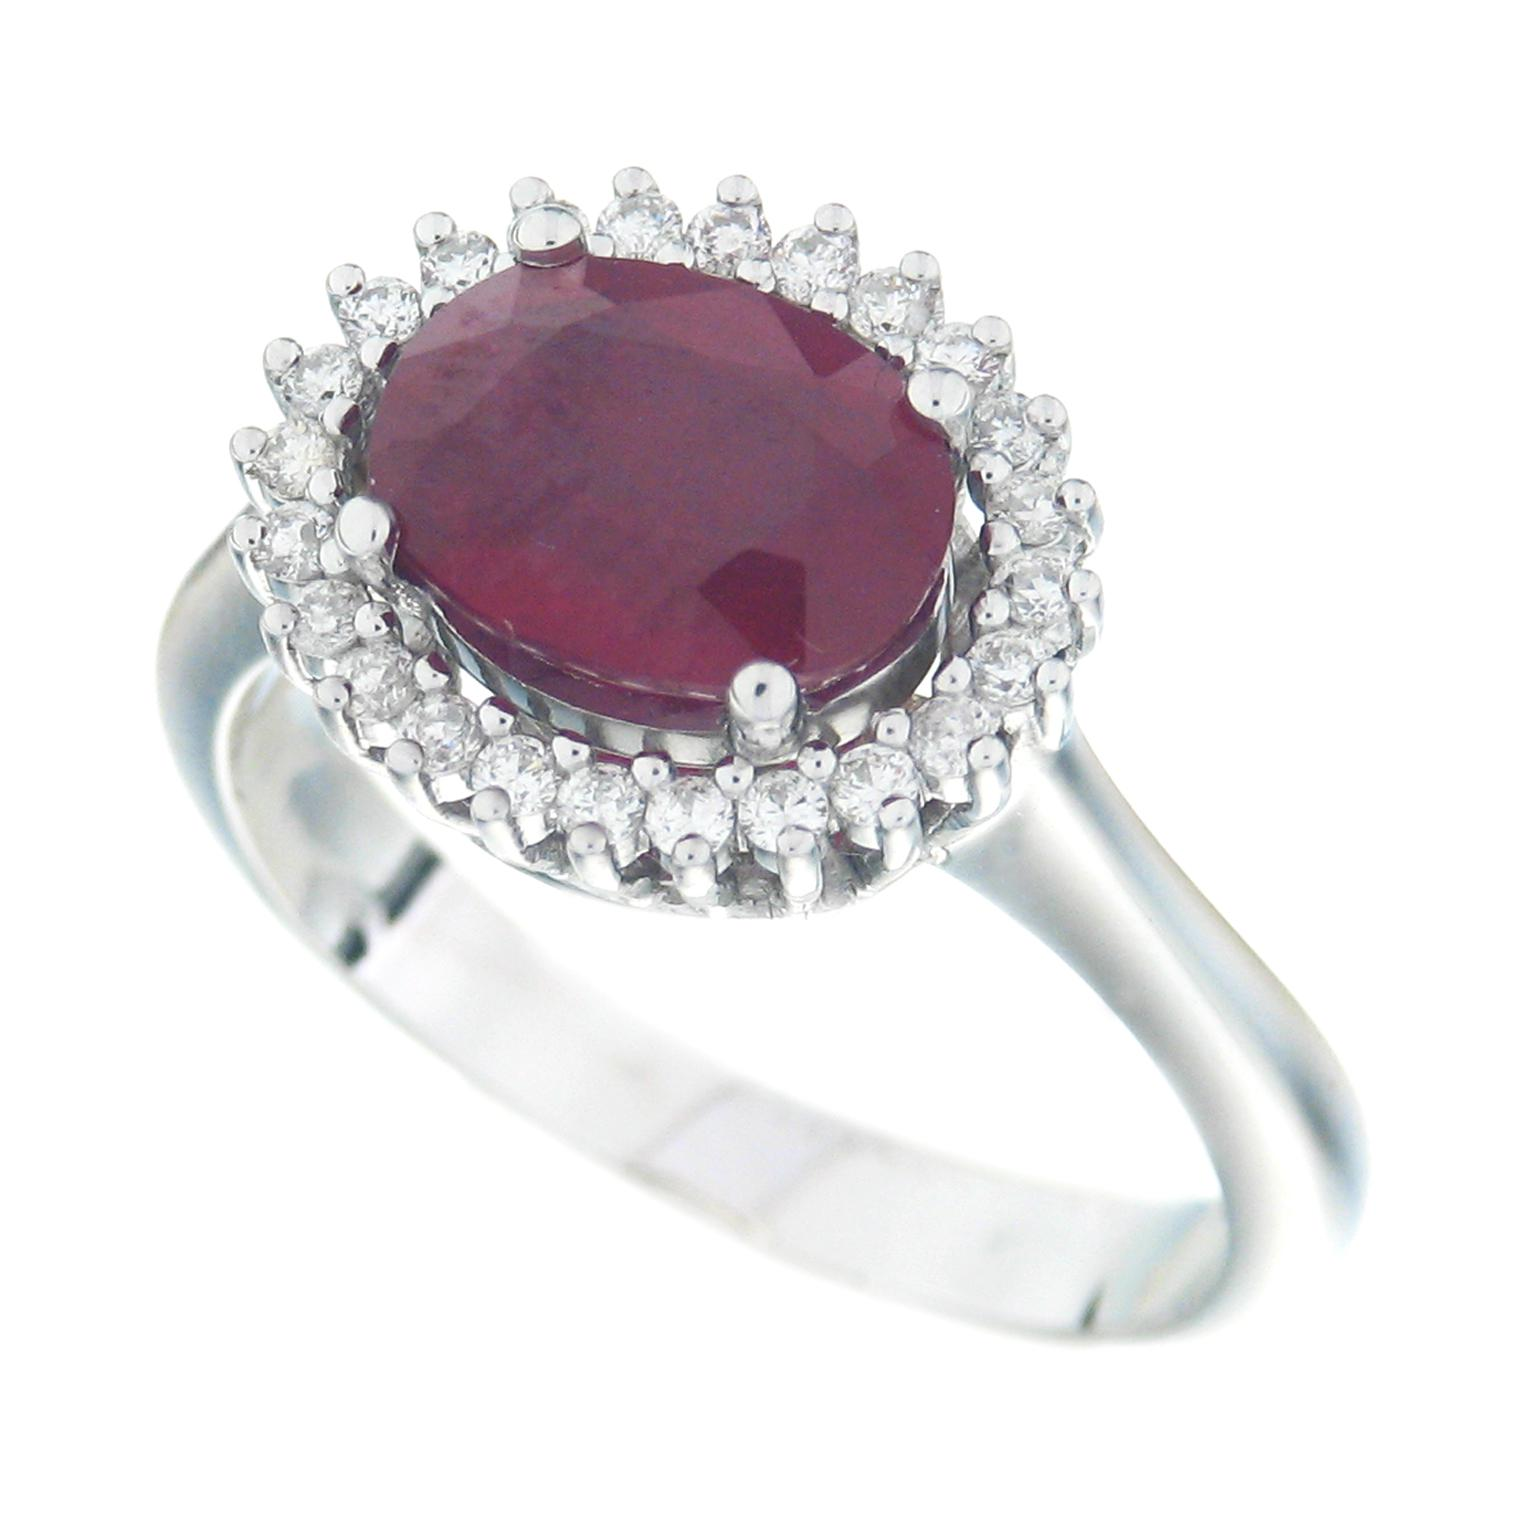 Gival 18ct White Gold Diamond & Ruby Ring 3871